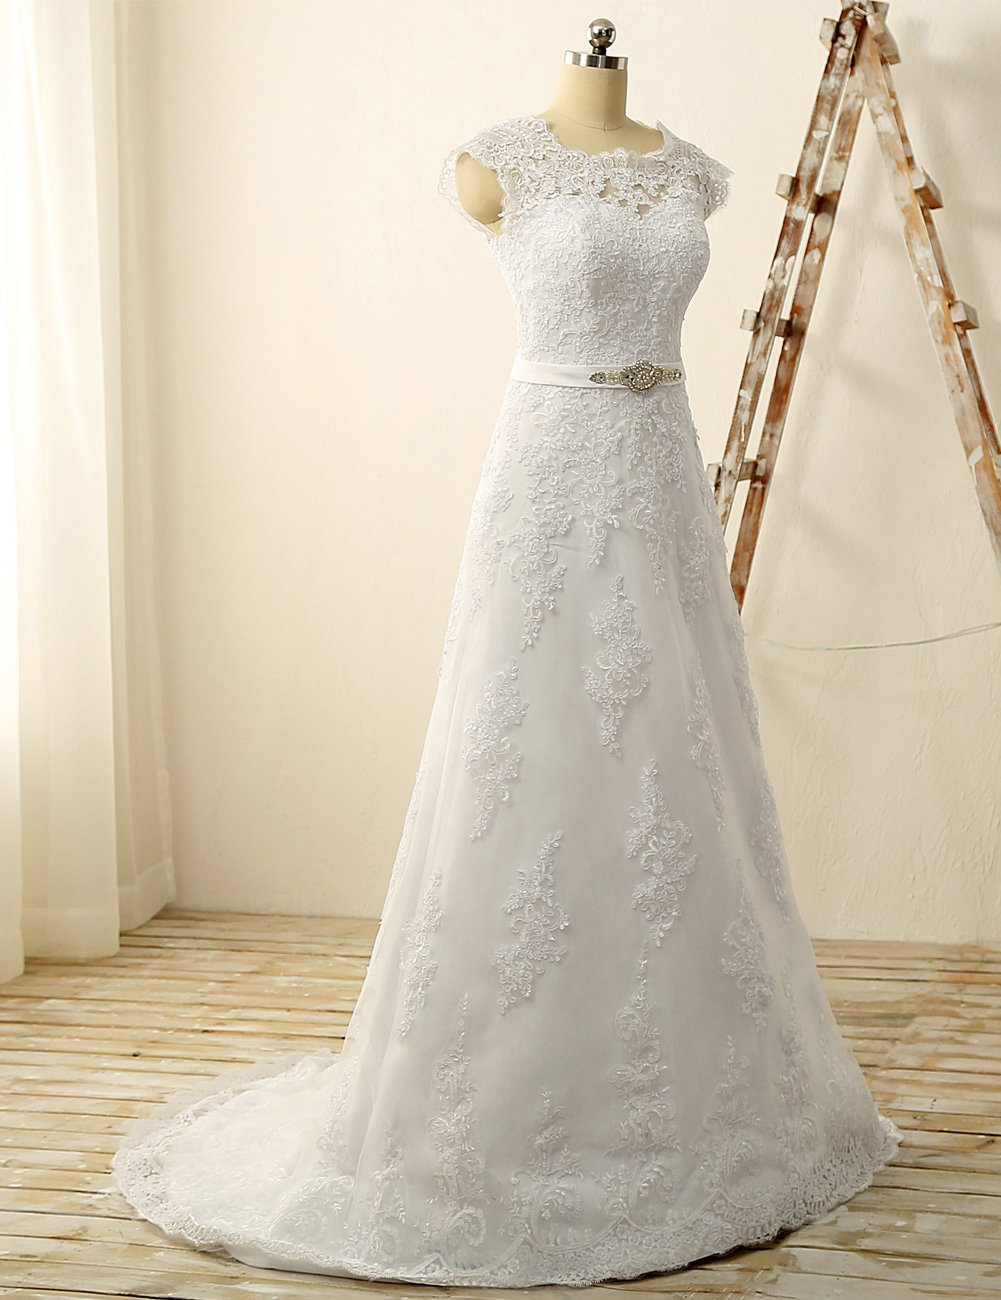 JAEDEN Lace Wedding Dress for Bride Mermaid Bridal Gown with Crysal Sash V Neck